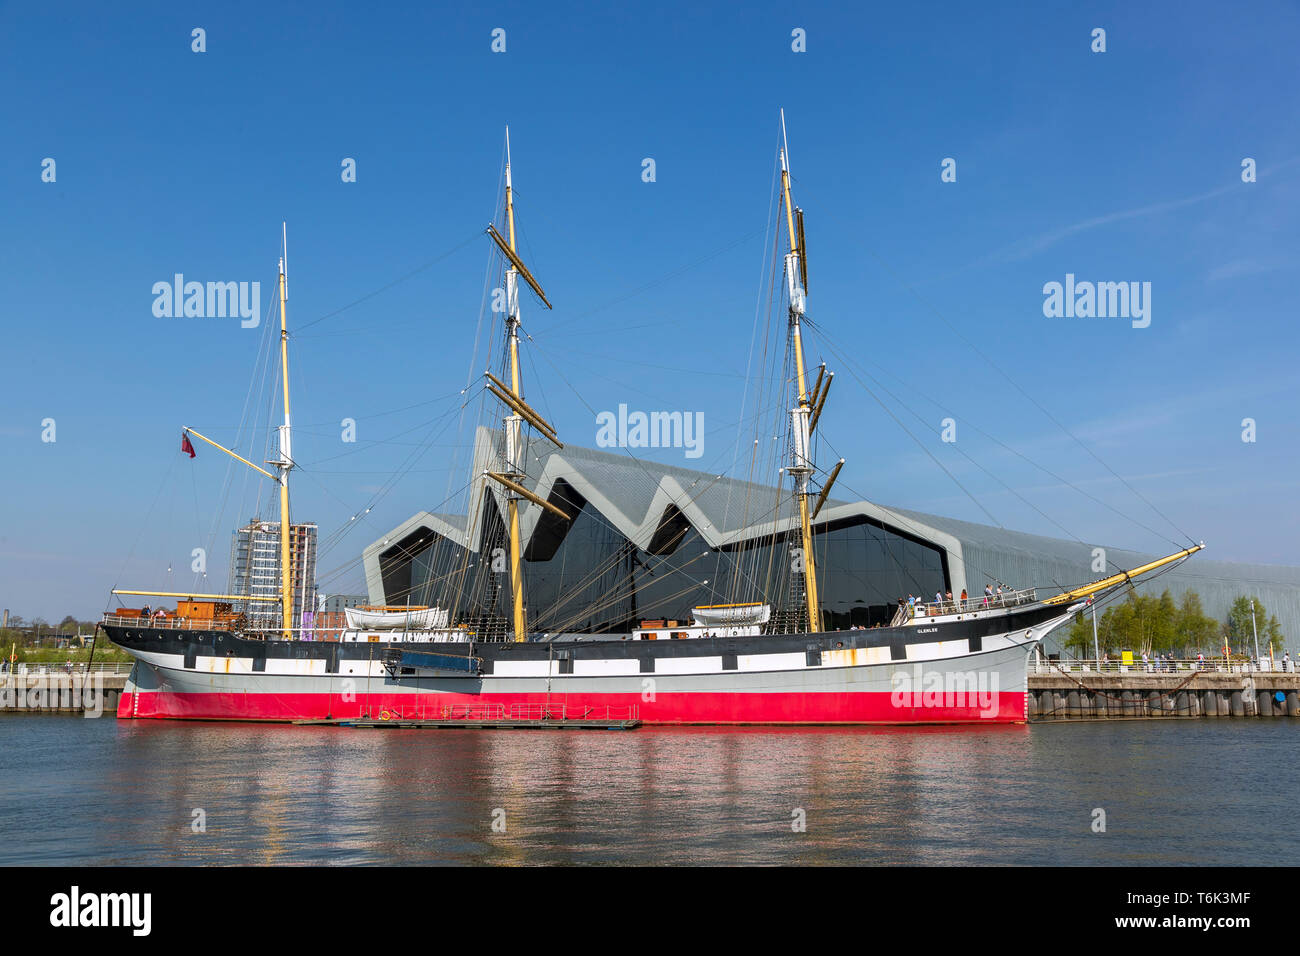 Glenlee tall ship, built in 1896, a three masted barque,  now berthed on the River Clyde at the Riverside transport museum, Glasgow, Scotland, UK Stock Photo